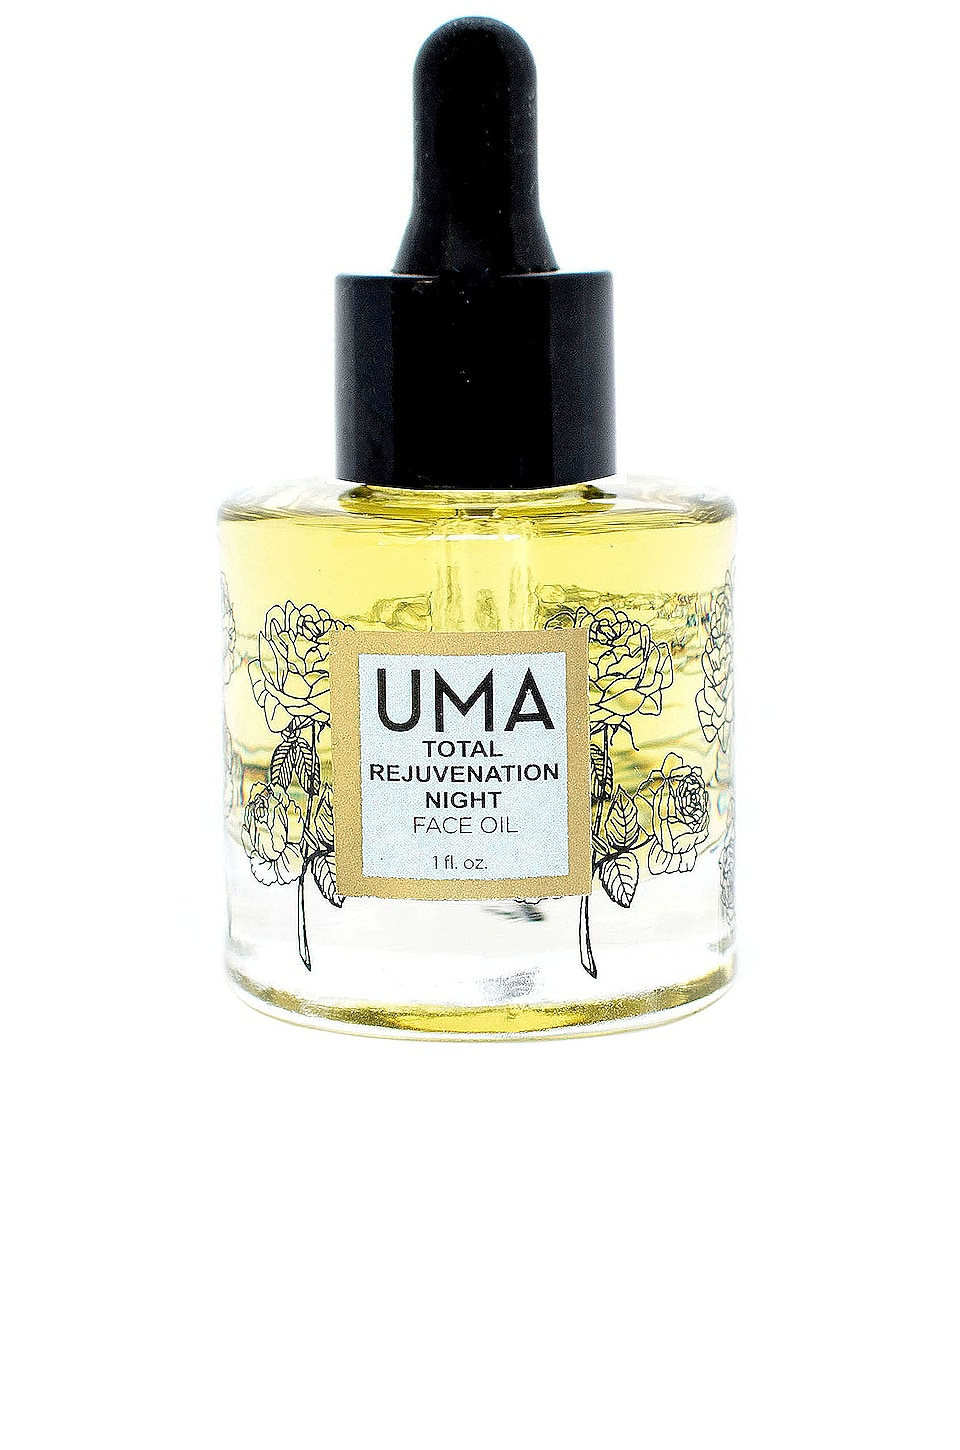 UMA Total Rejuvenation Night Face Oil